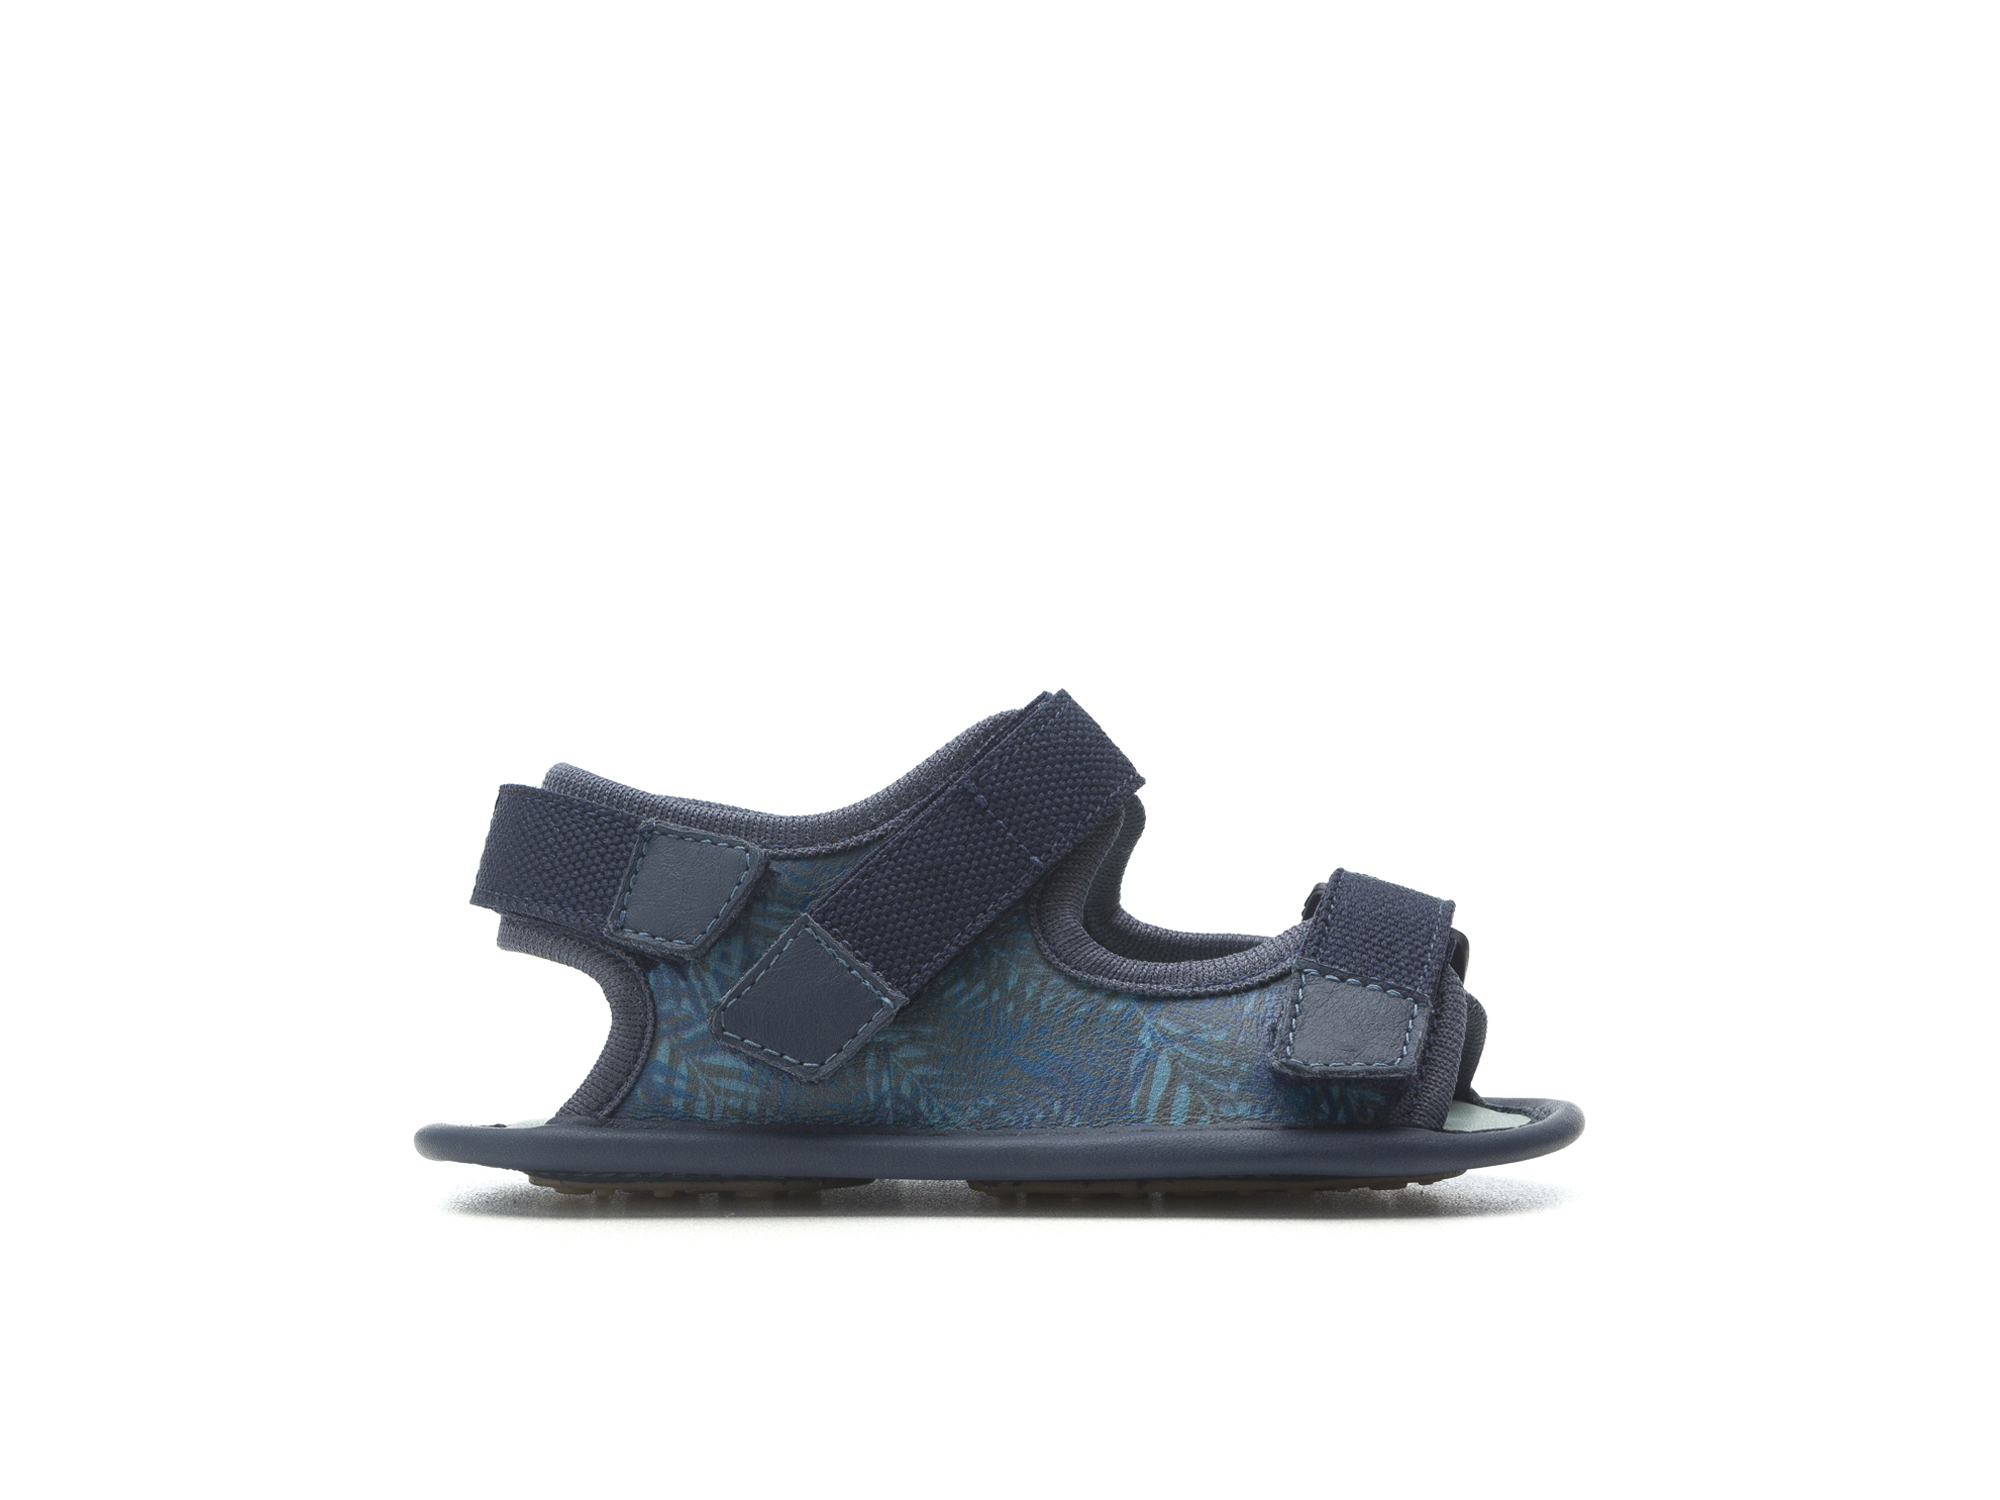 Sandal Boardy Blue Palm/ Rustic Blue Baby for ages 0 to 2 years - 1